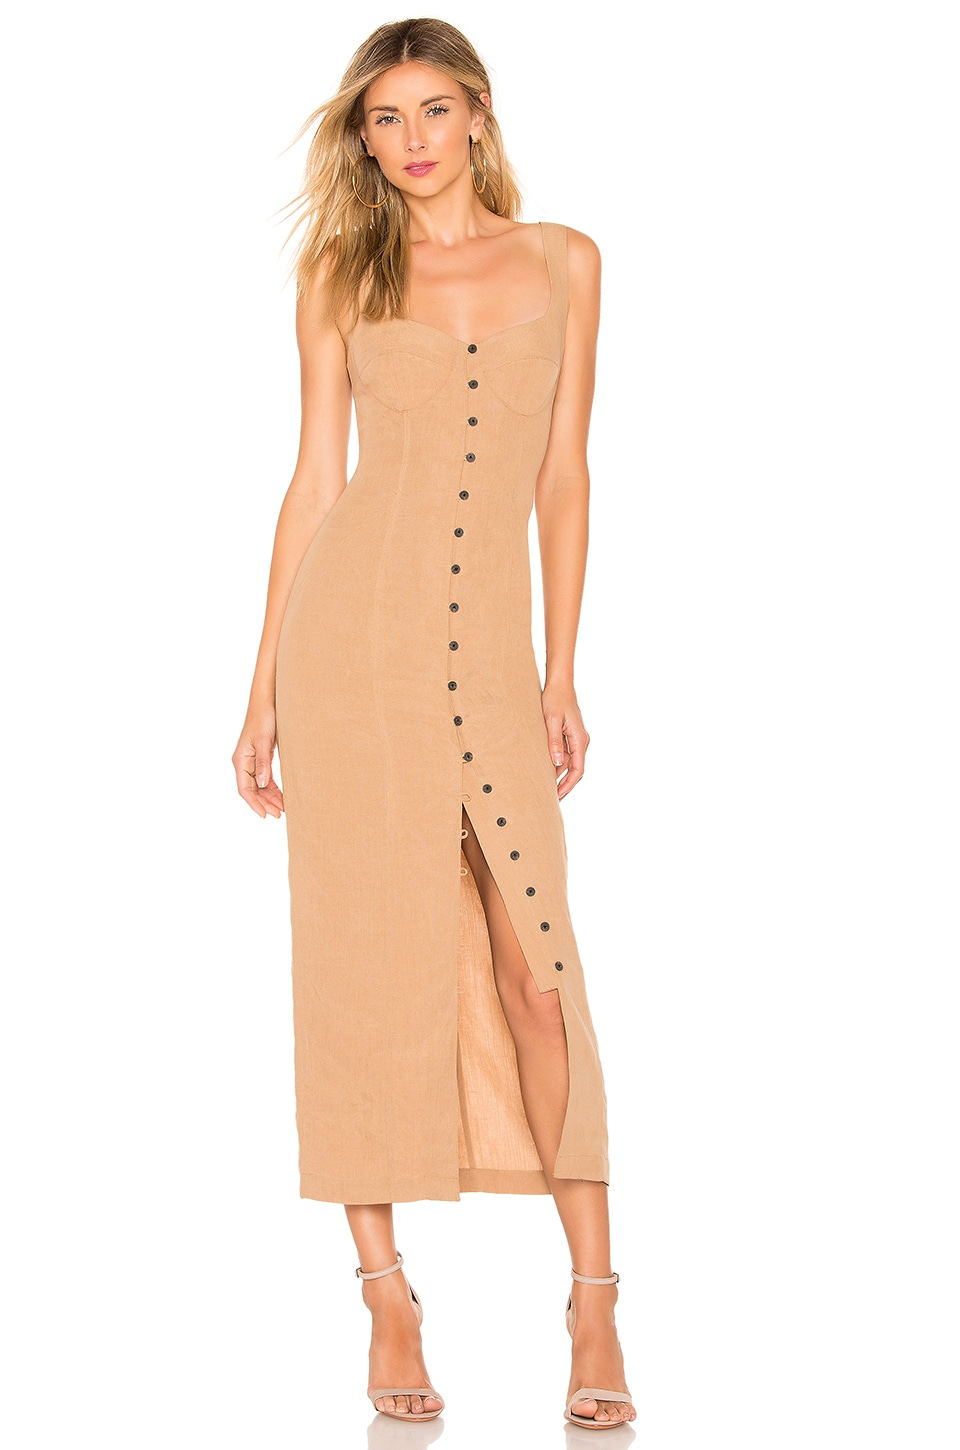 Mara Hoffman Angelica Dress in Khaki